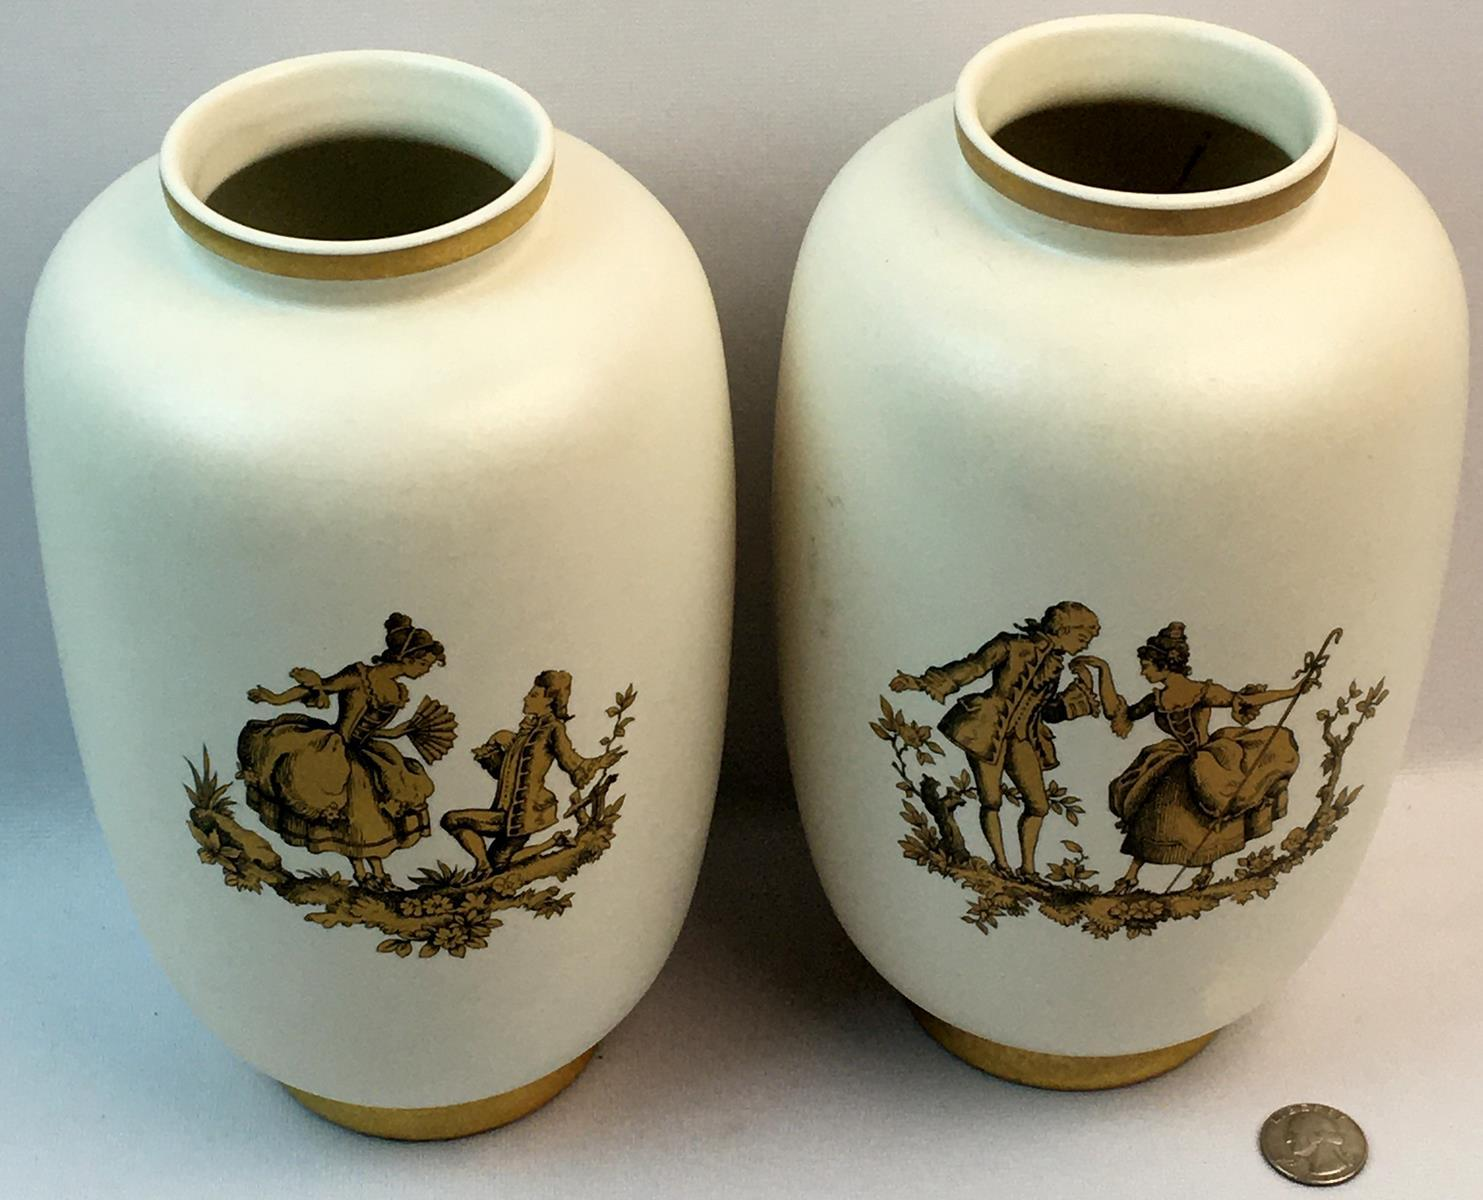 Vintage Lot of 2 Hyalyn No. 256 Pottery Vases w/ Colonial Scenes